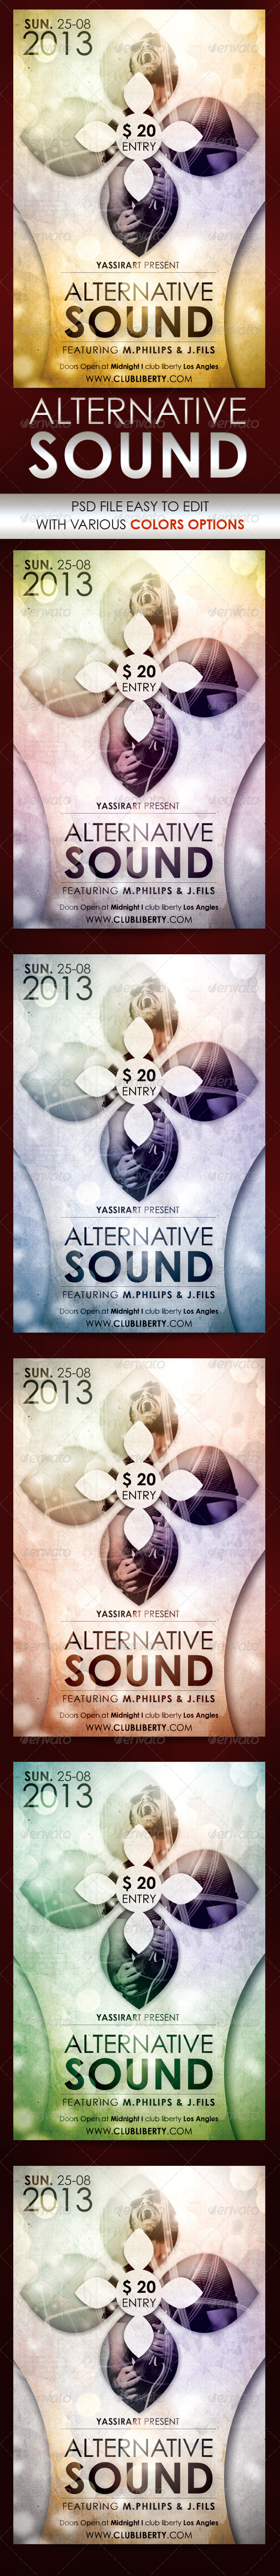 Alternative Sound Flyer Template